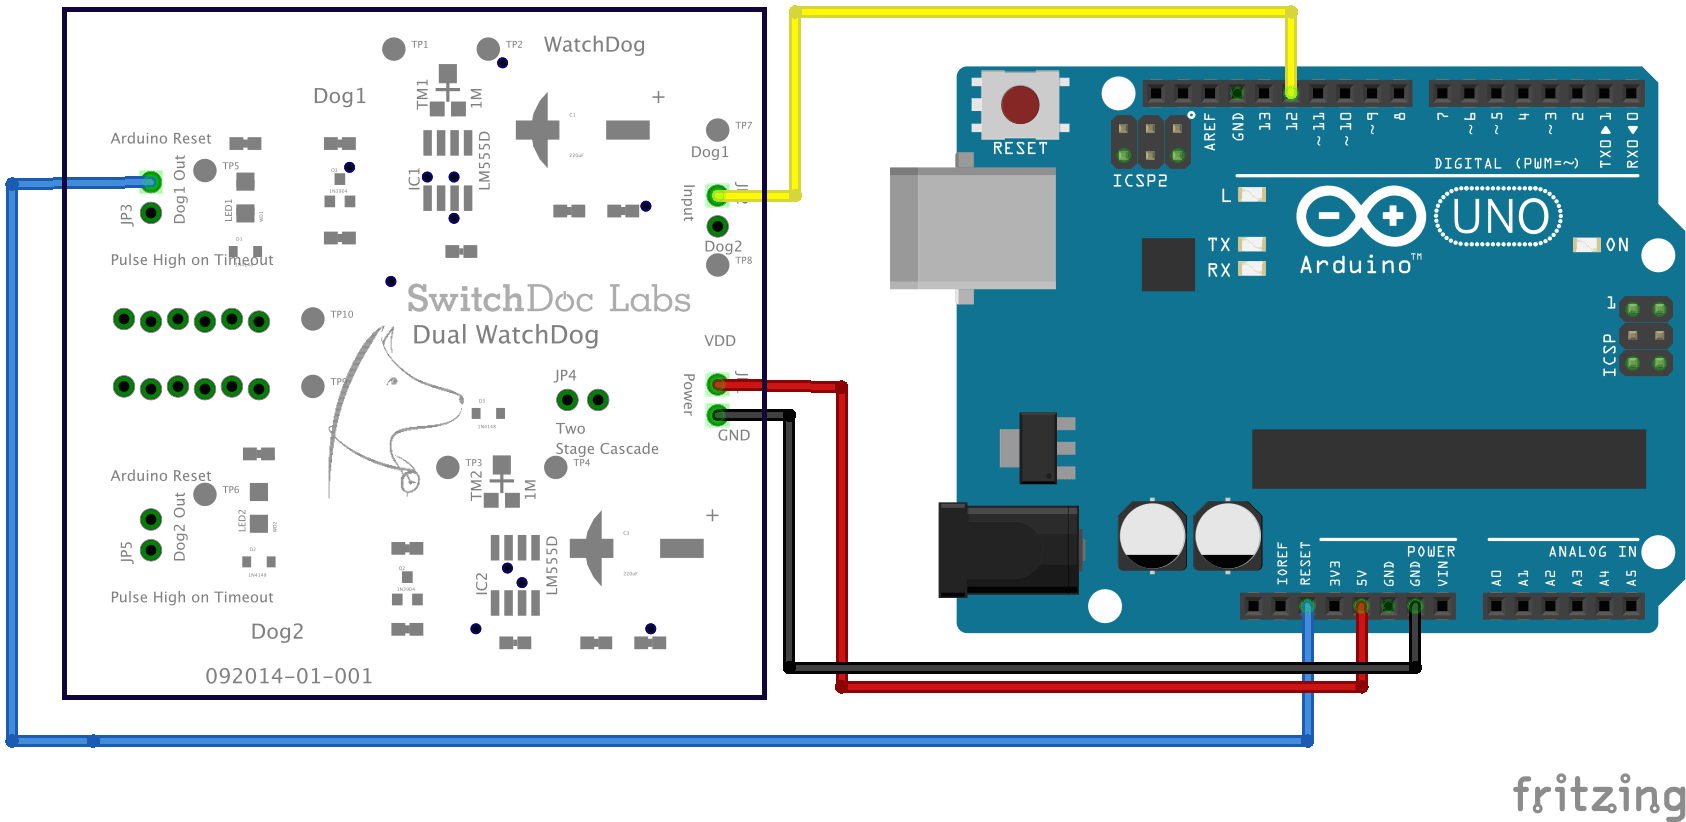 Dual WatchDog Timer - SwitchDoc Labs